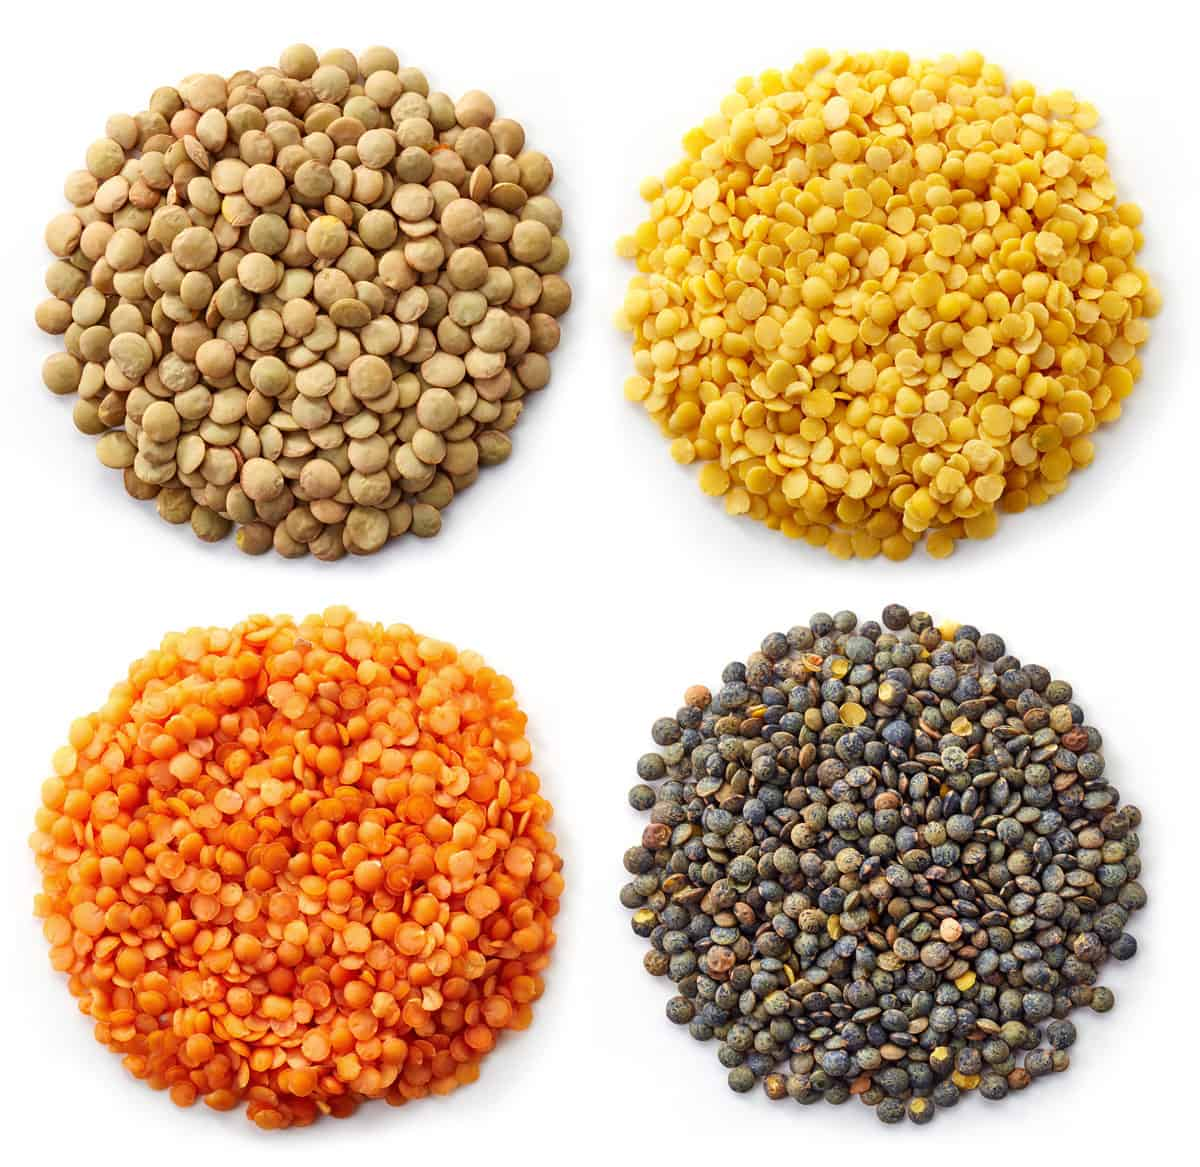 4 varieties of dried lentils: brown, yellow, red, and black.